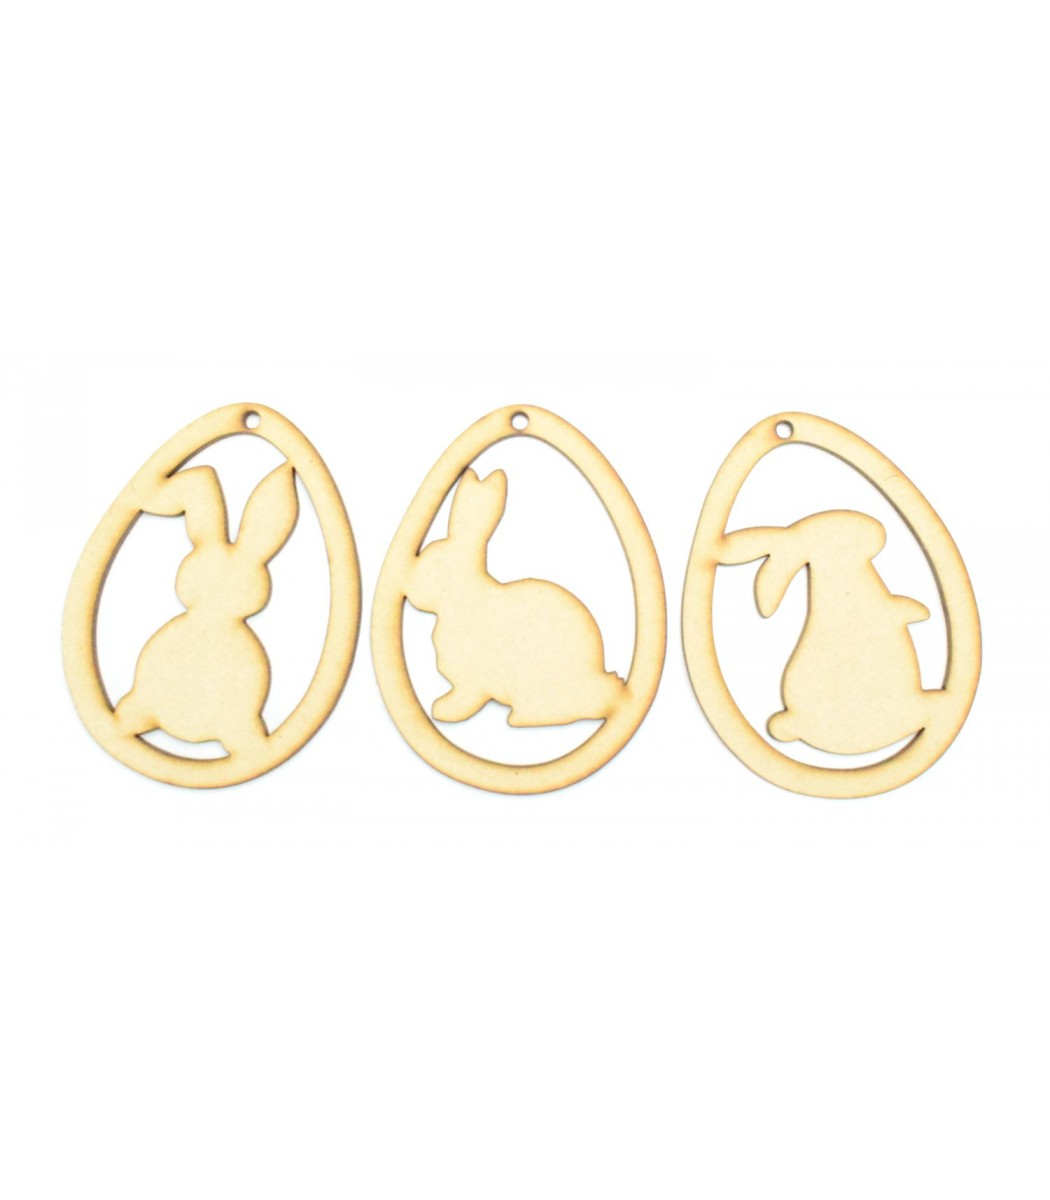 Laser Cut Easter Egg Decorations With Rabbit Silhouettes Inside Set Of 3